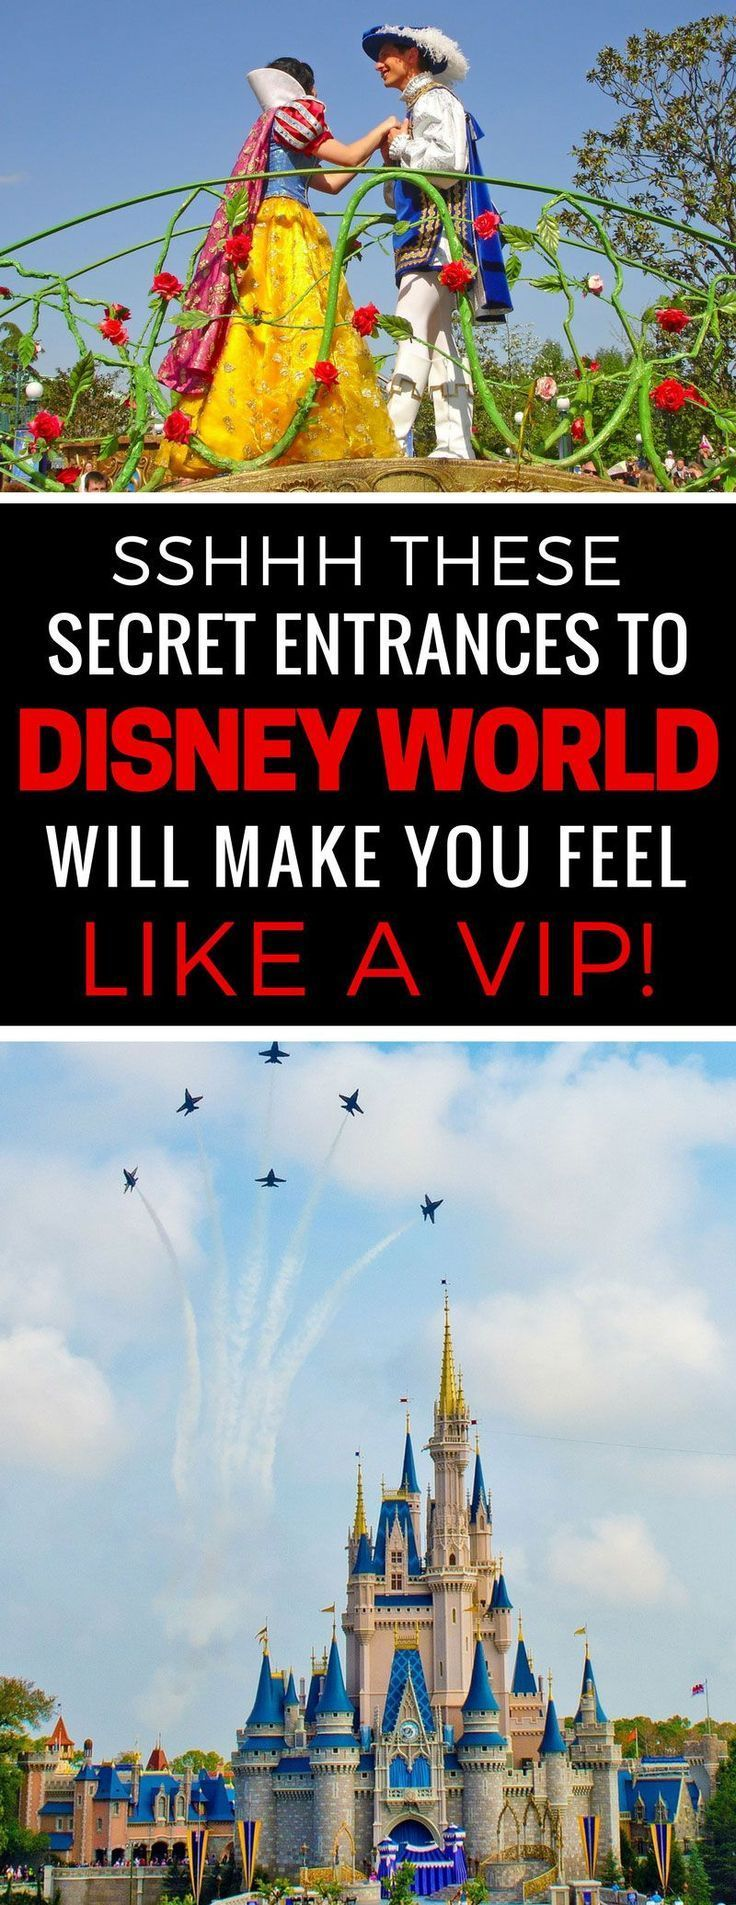 Who knew! I'm printing this list out because these secret entrances are going to save us a ton of time on our Disney vacation! Thanks for sharing! #vacationflorida